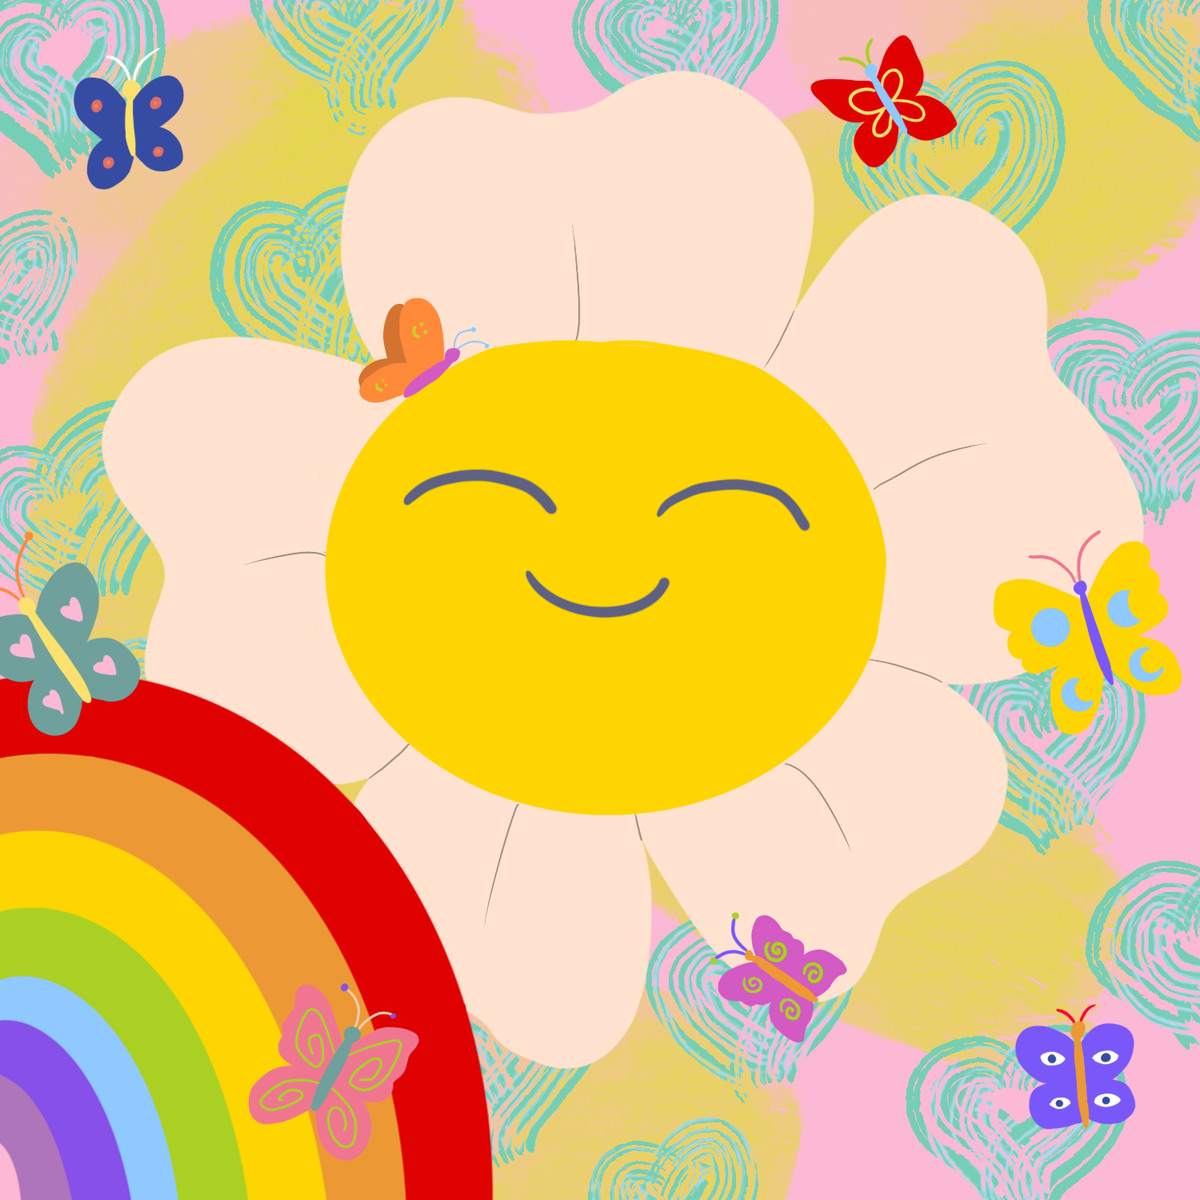 A smiley face flower surrounded by hearts, butterflies, and a rainbow.